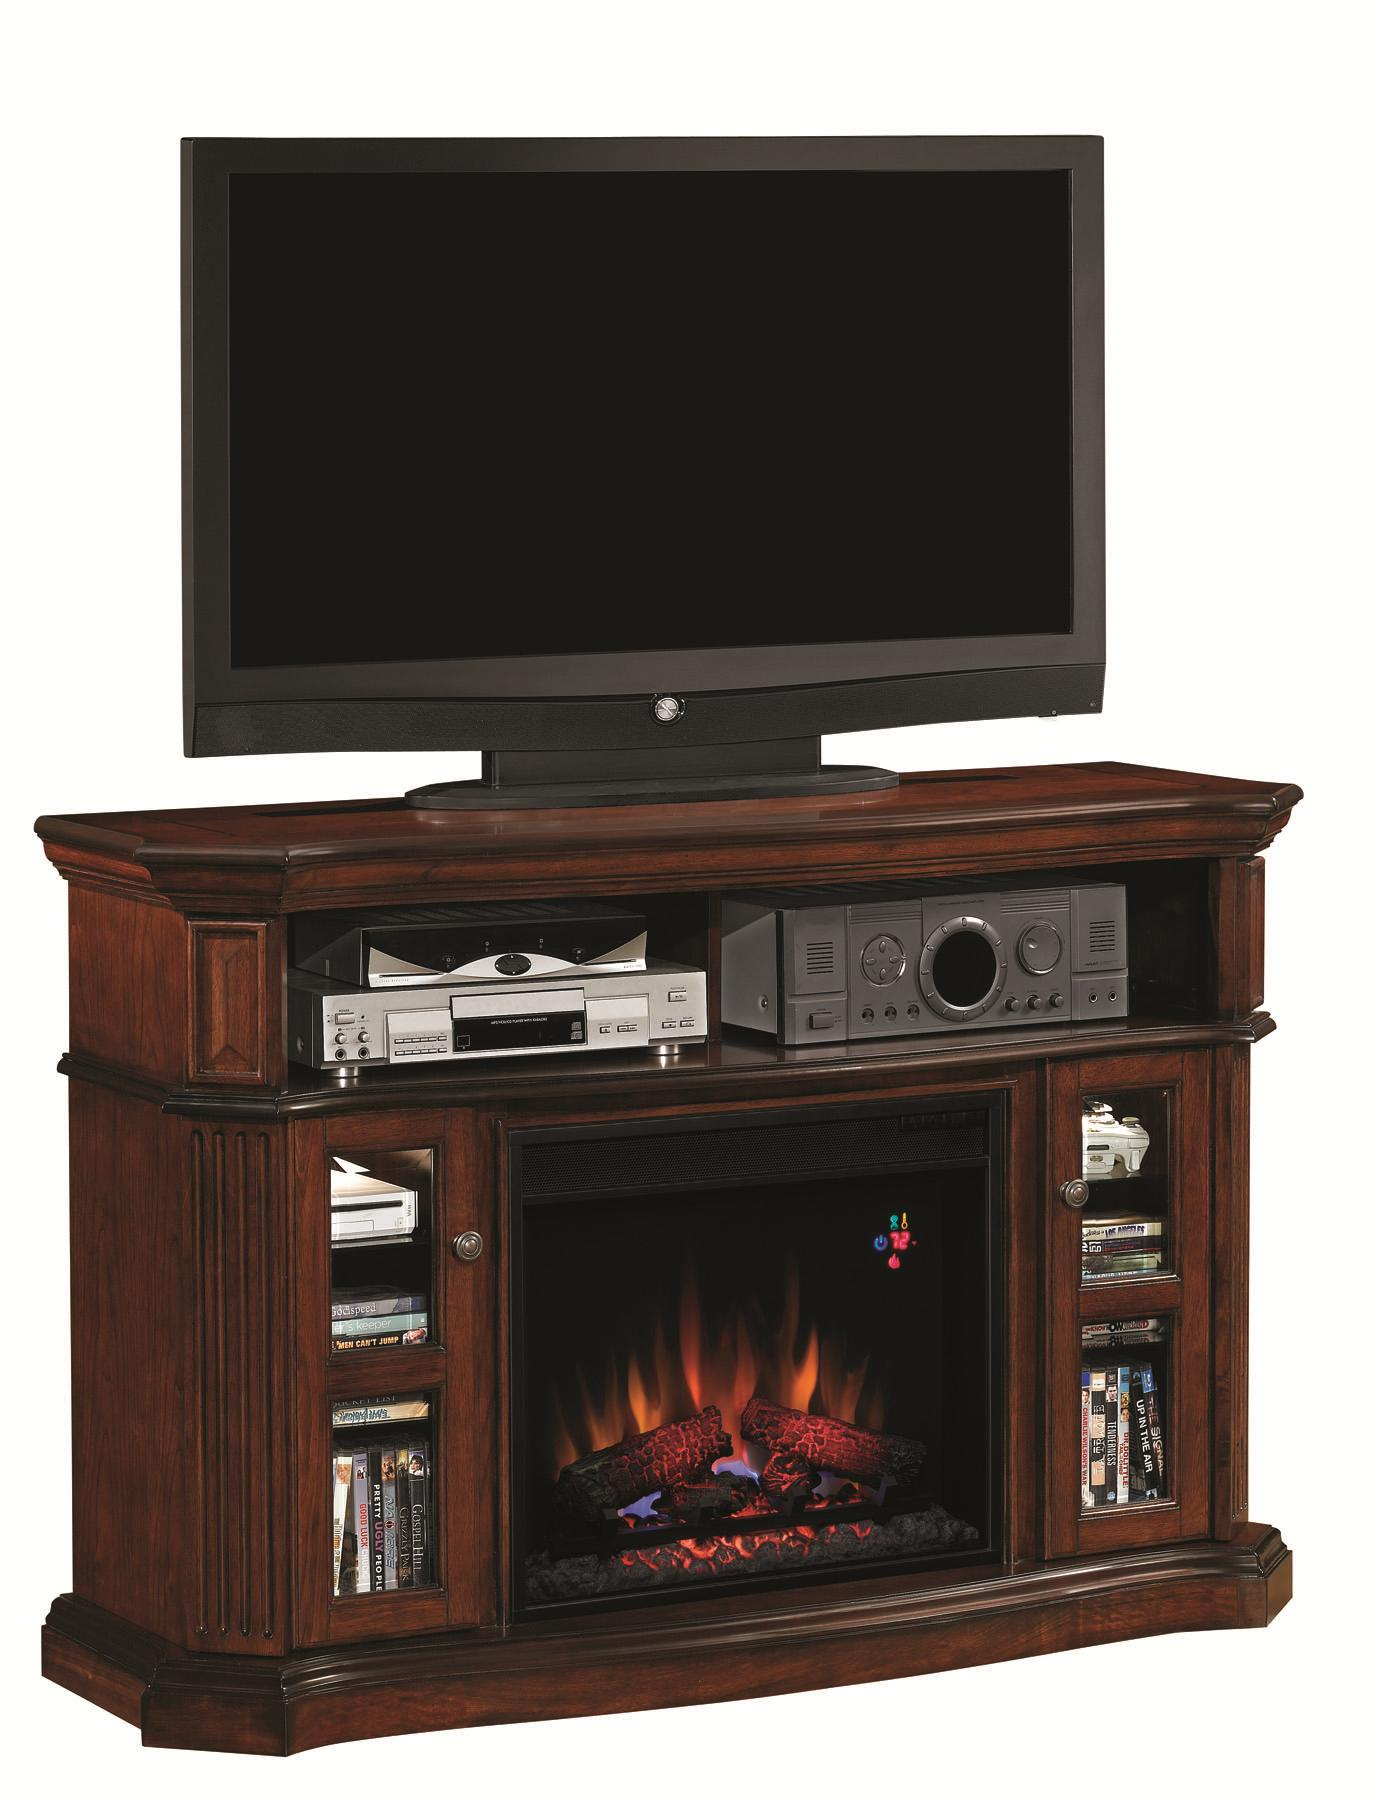 "Morris Home Claxton Claxton 2pc Fireplace w/23"" Insert - Item Number: 23MM1297-C259/23EF031GRP"